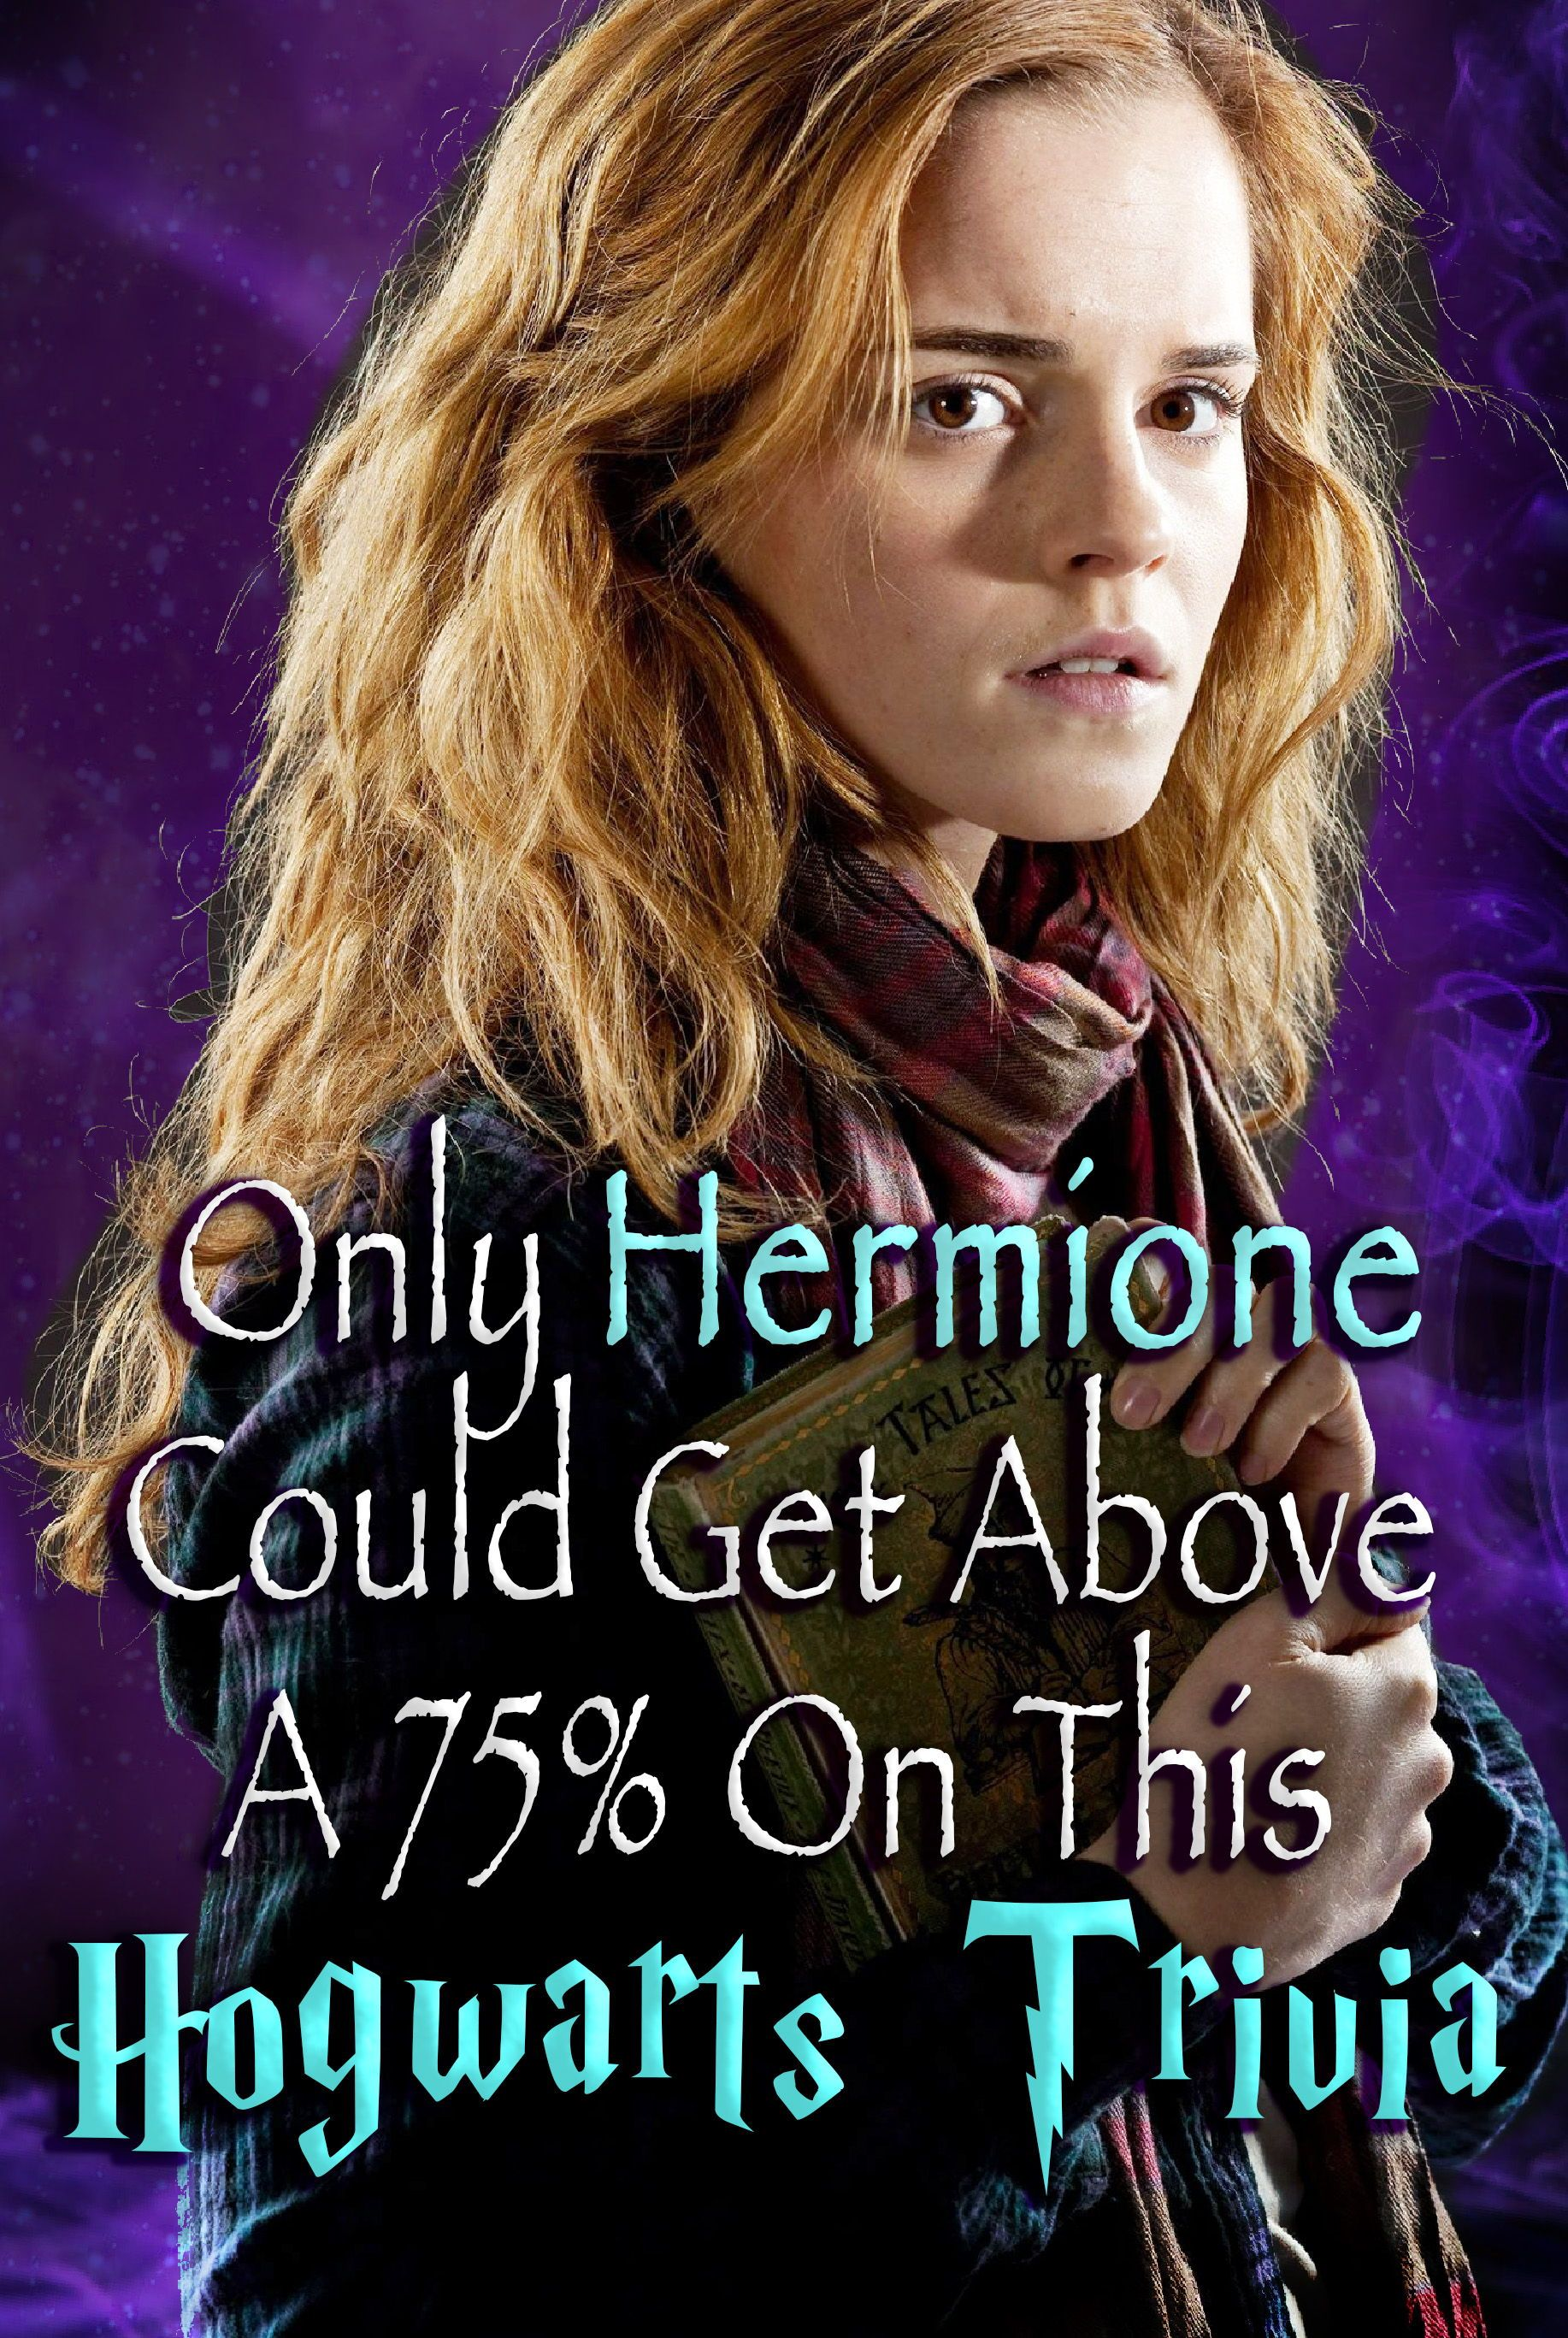 Quiz Only Hermione Could Get Above A 75 On This Hogwarts Trivia In